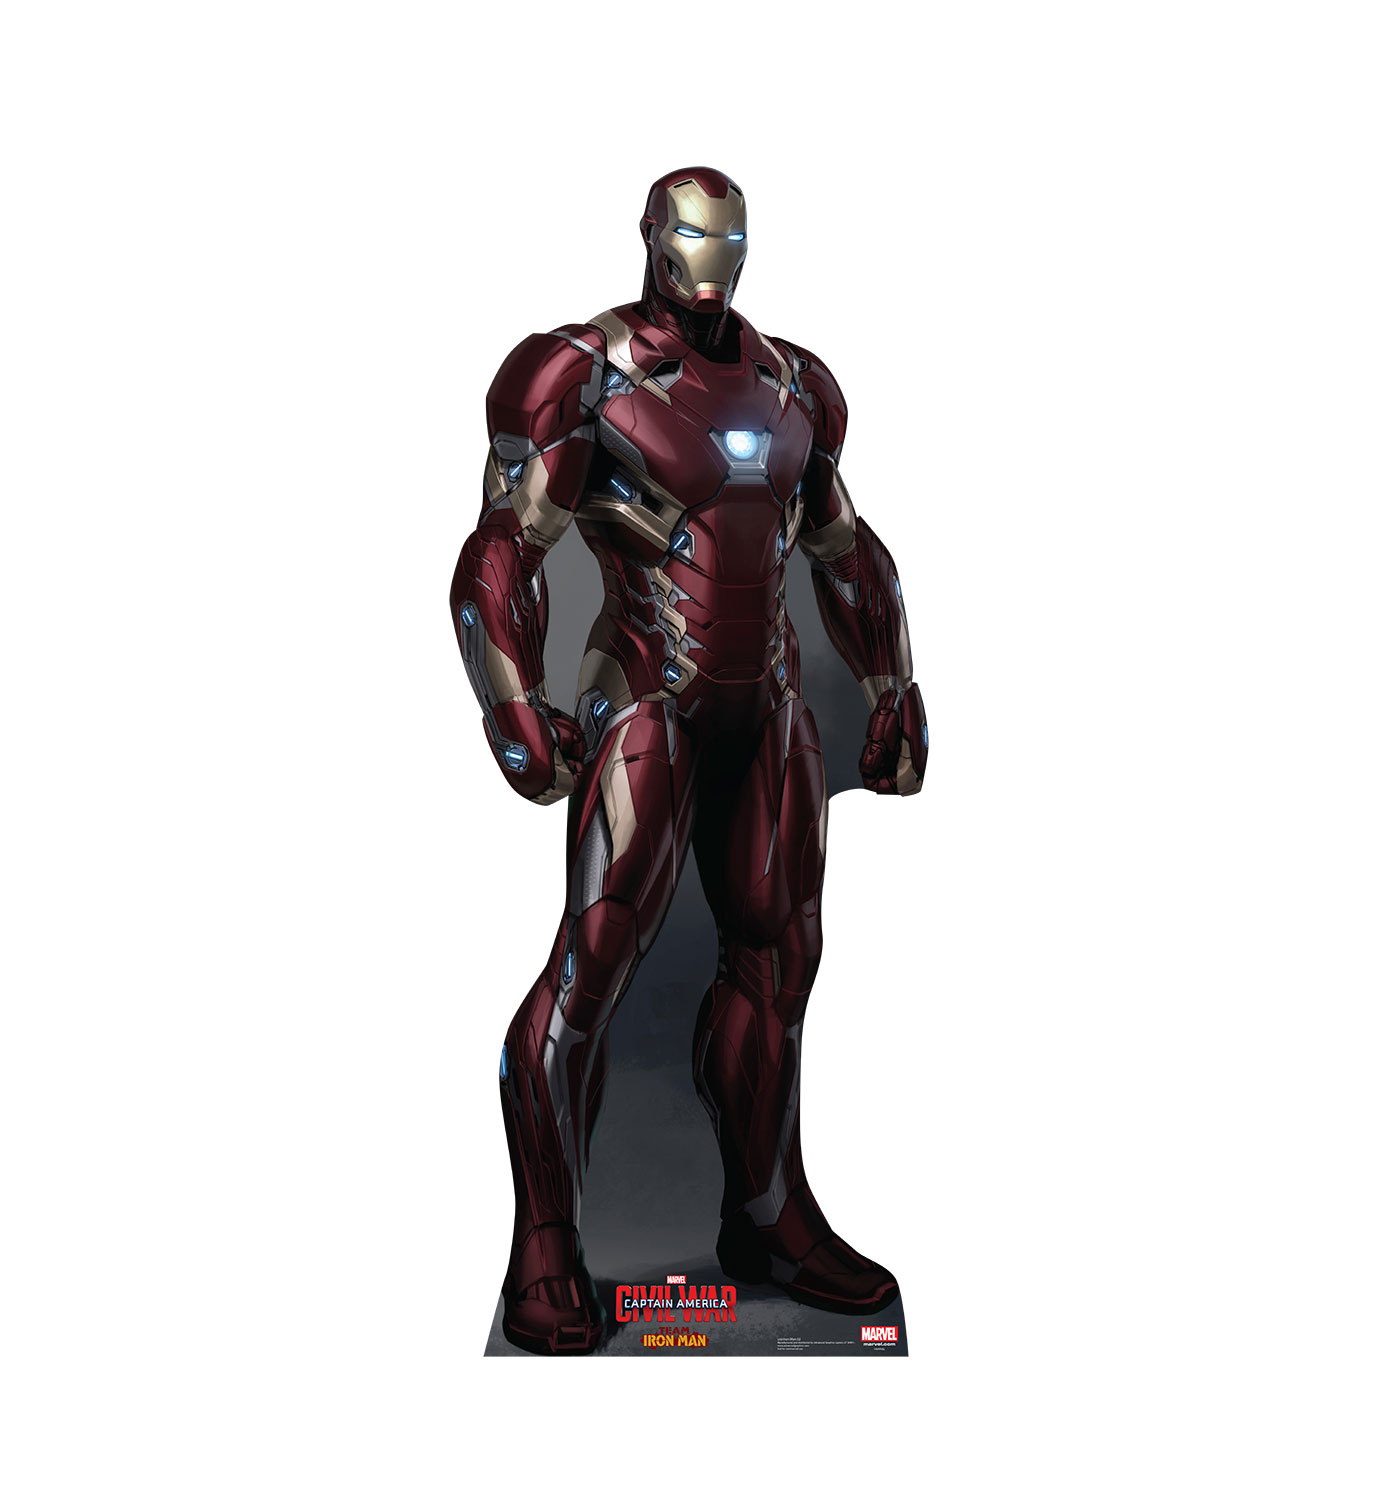 captain-america-civil-war-artwork-iron-man-4